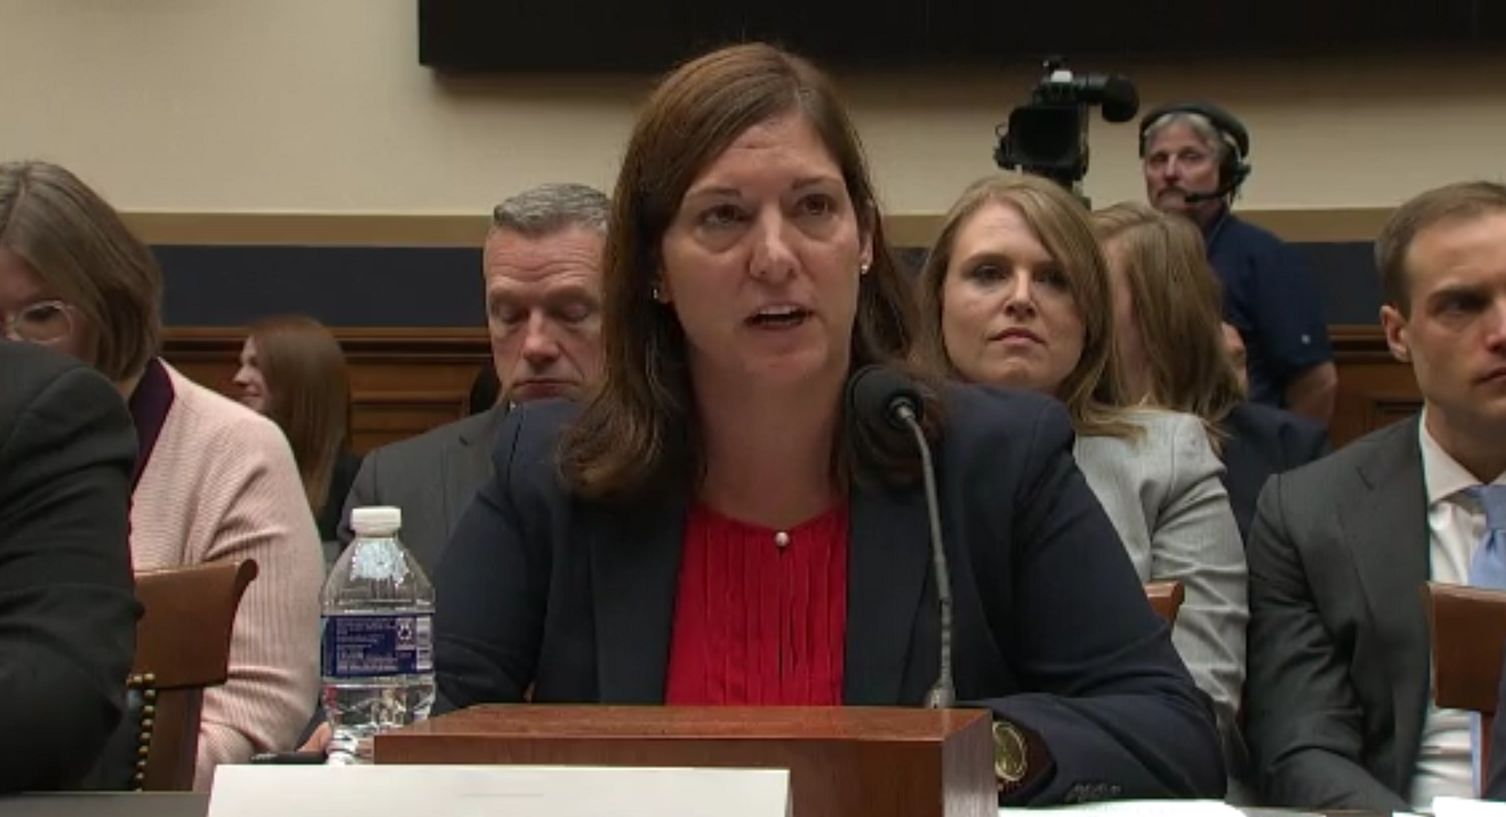 <p>FBI Deputy Assistant Director for Counterterrorism Nikki Floris testifies before the House Judiciary Committee on 2020 election security, Tuesday, Oct. 22, 2019. (Image: CNN Newsource)<br></p>